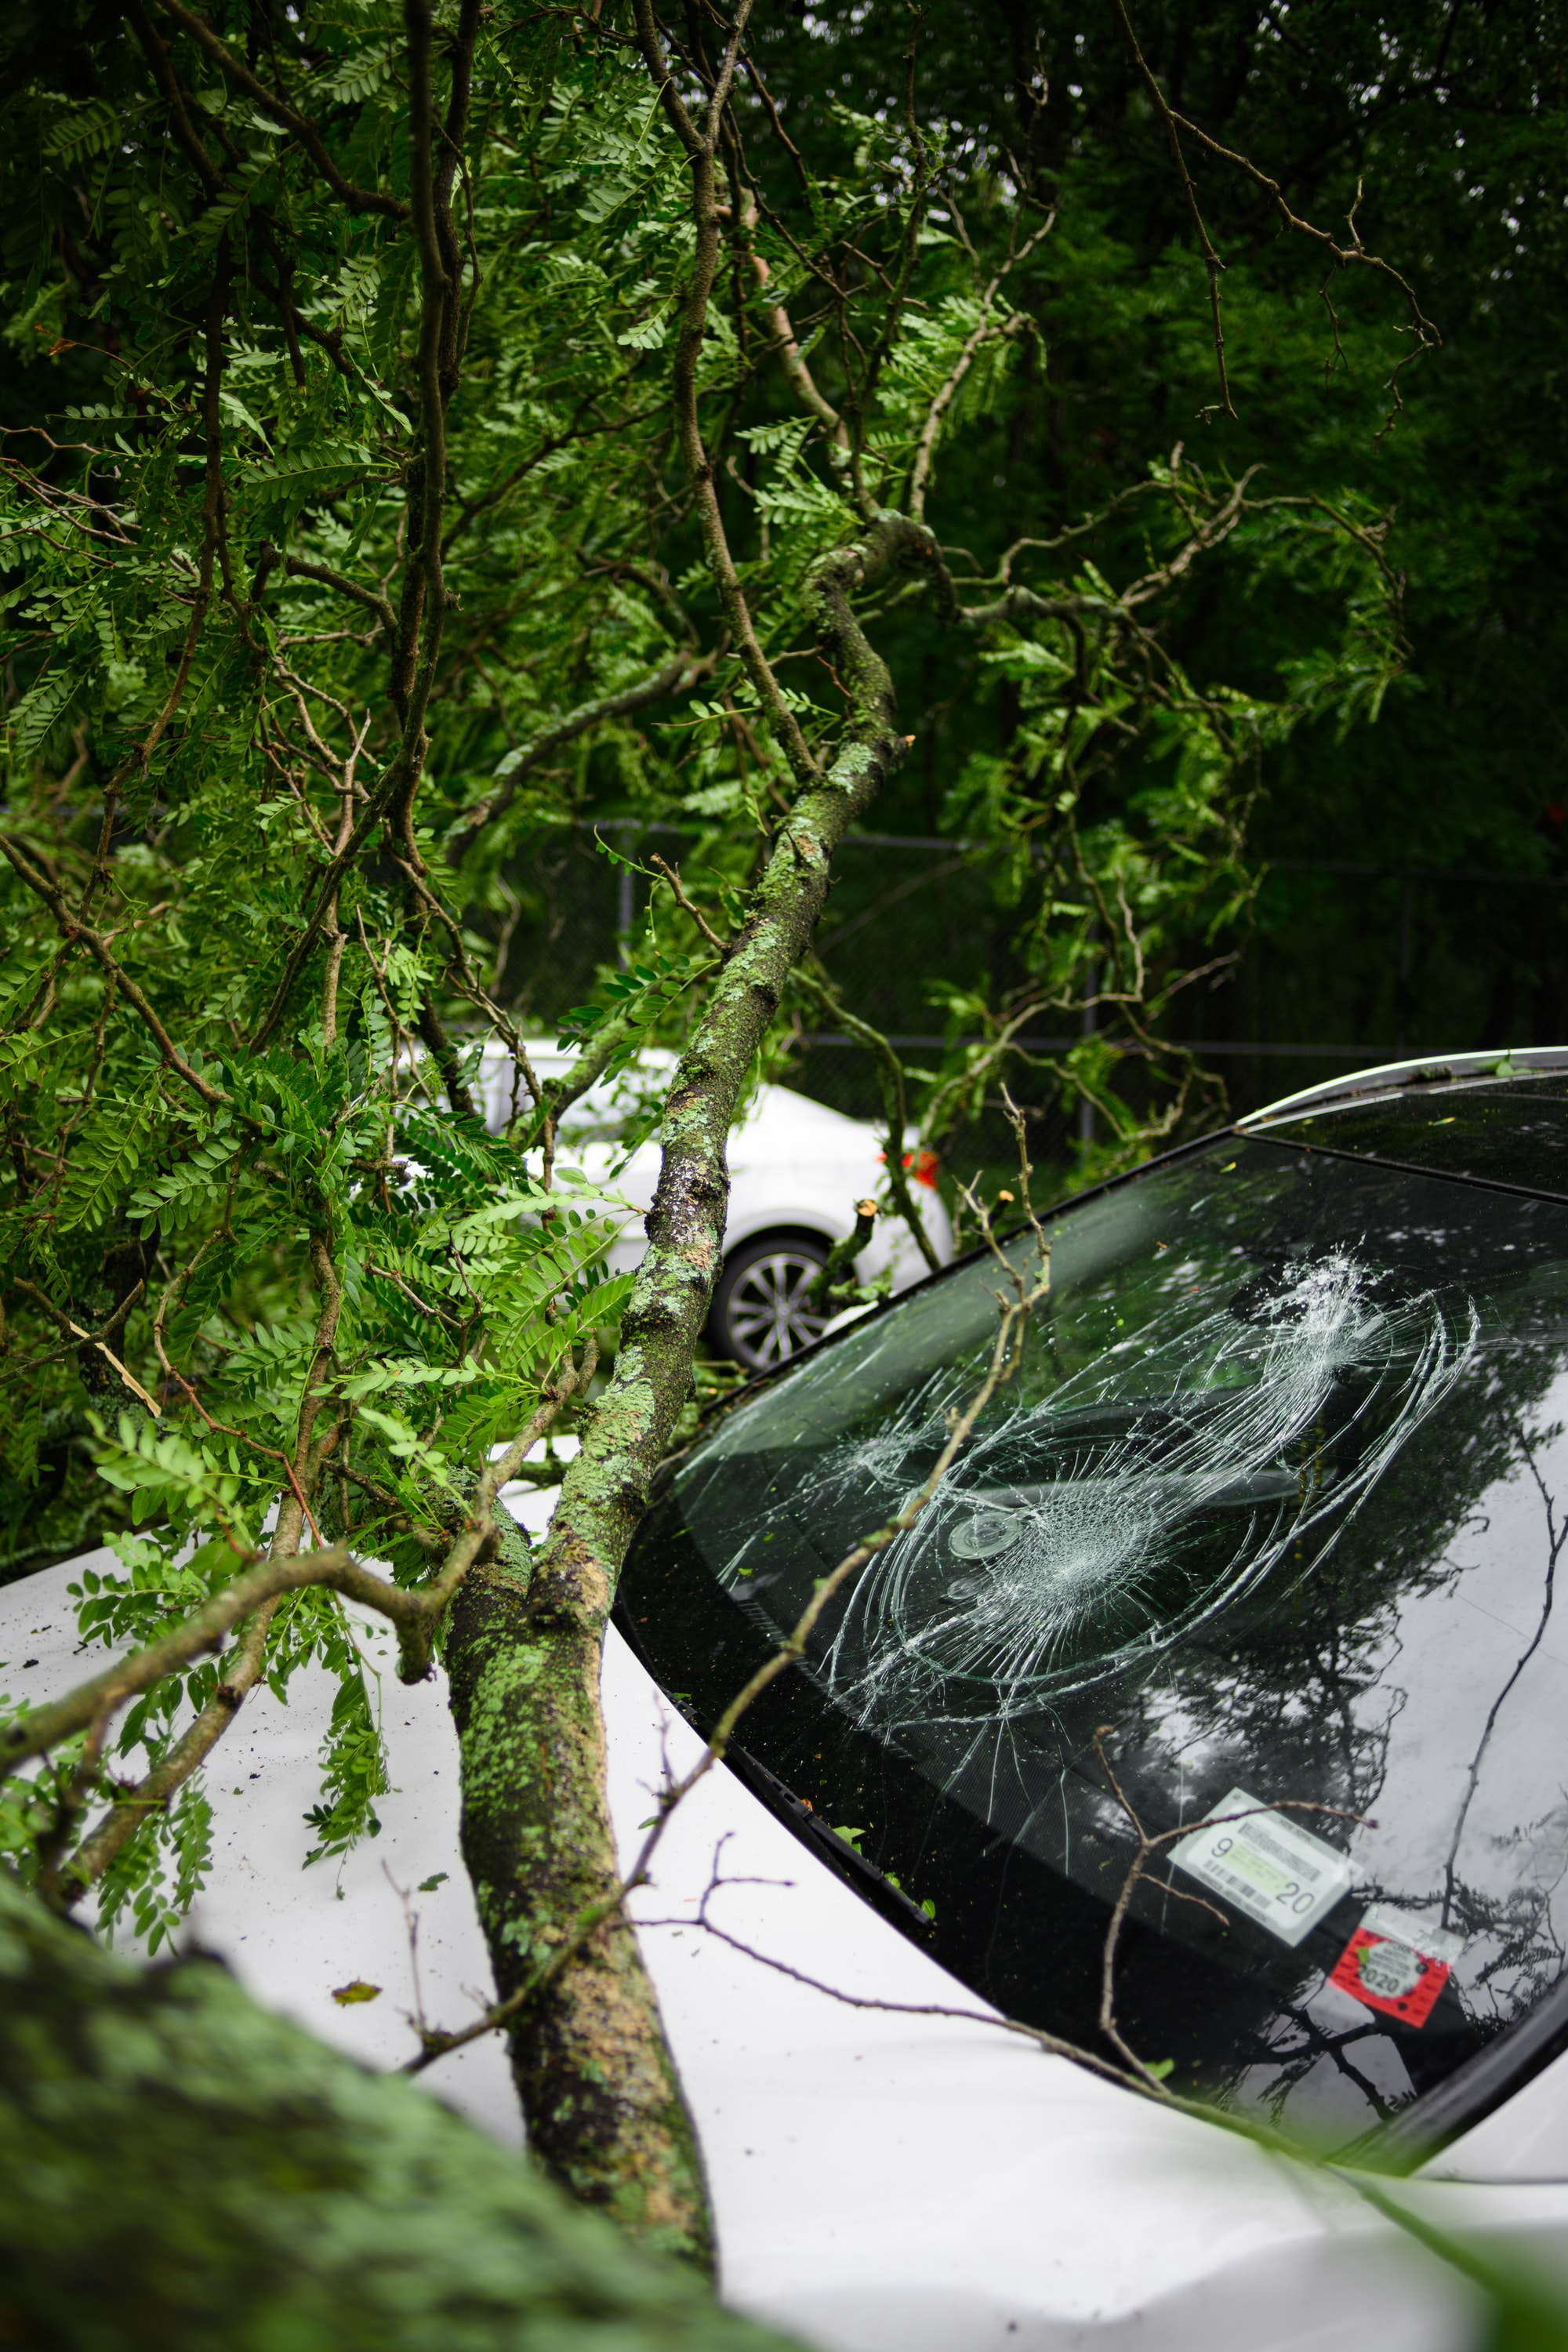 The windshield of a white car broken from a falling tree due to a storm.